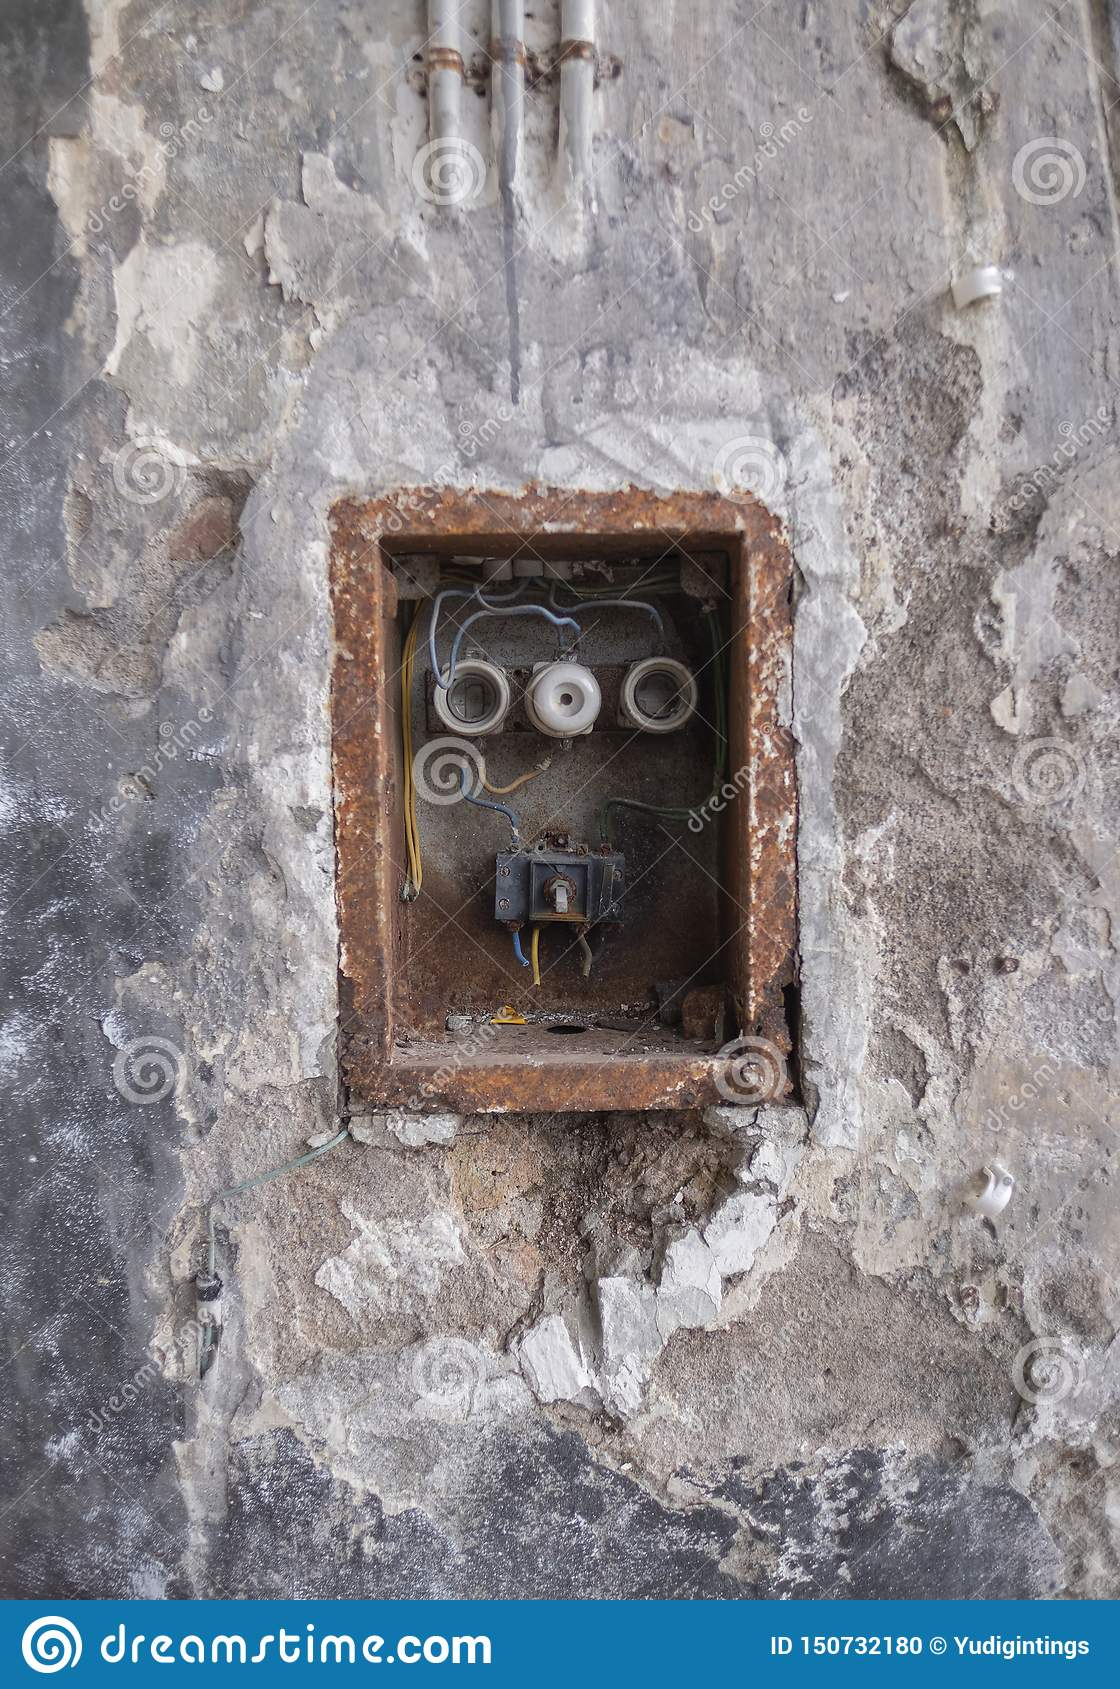 Old Bad Rusty Switch Box on the Weathered Wall